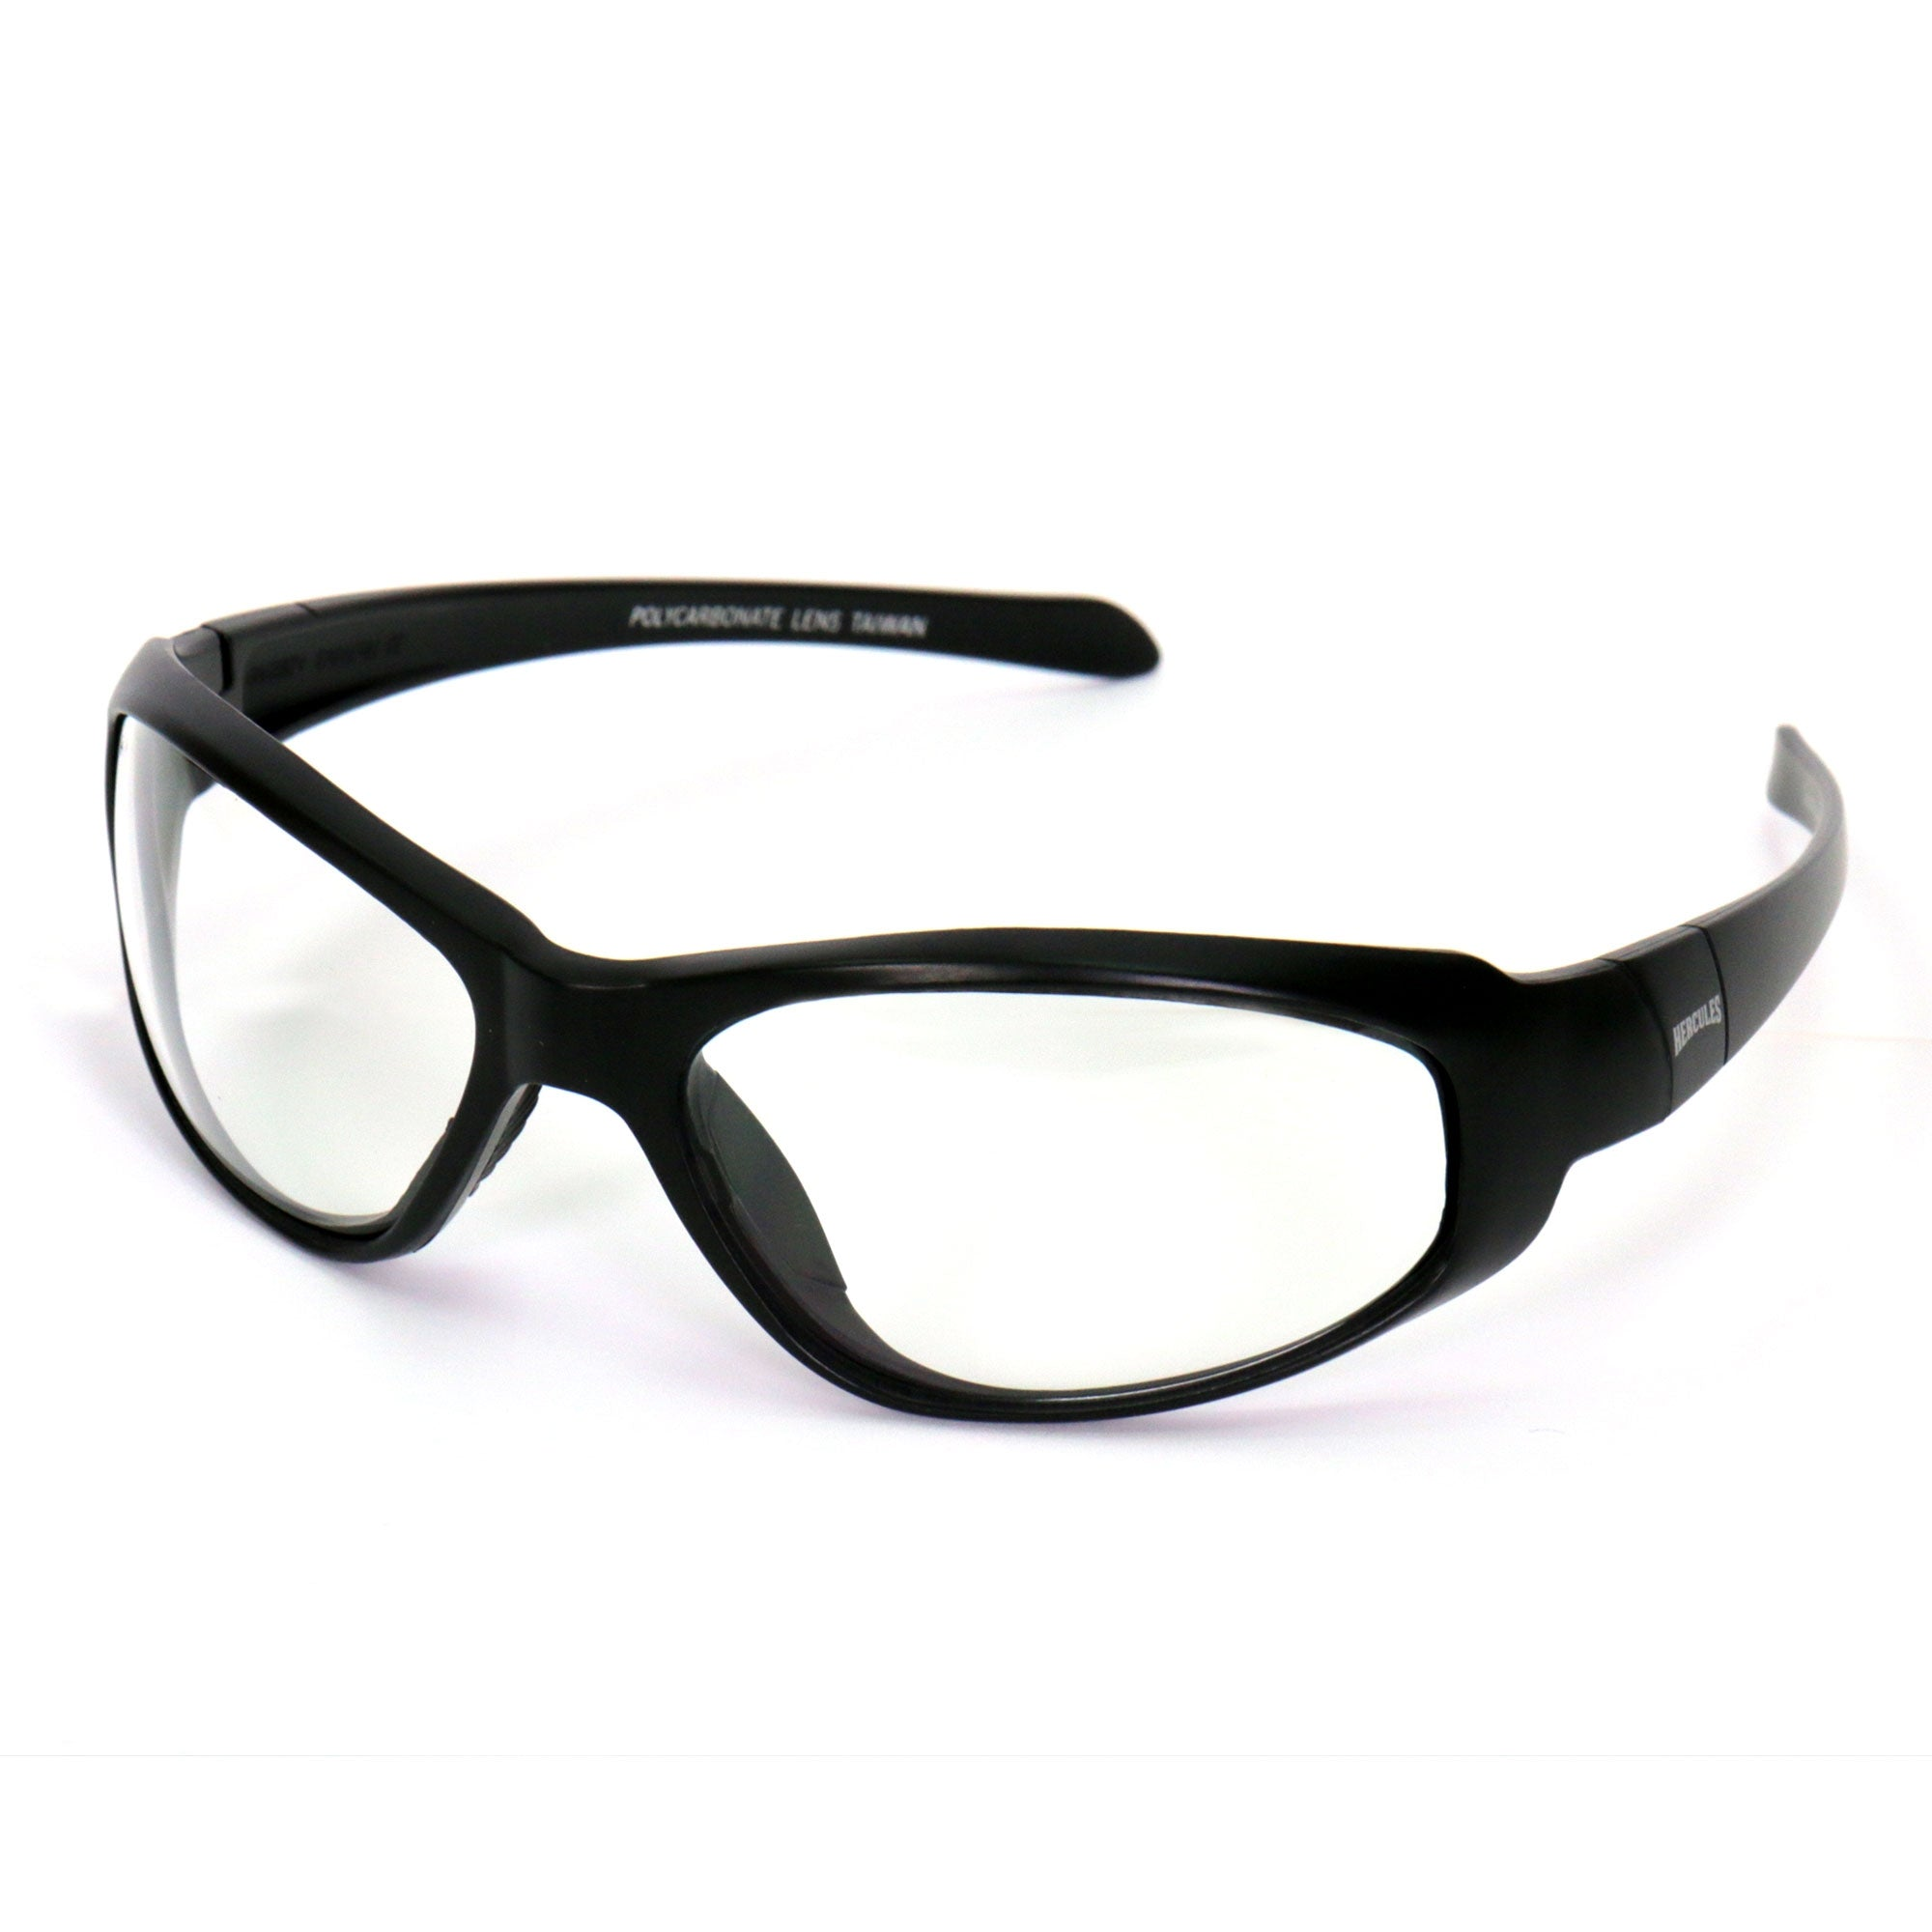 Hot Leathers Safety Hercs Safety Glasses - Clear Lenses